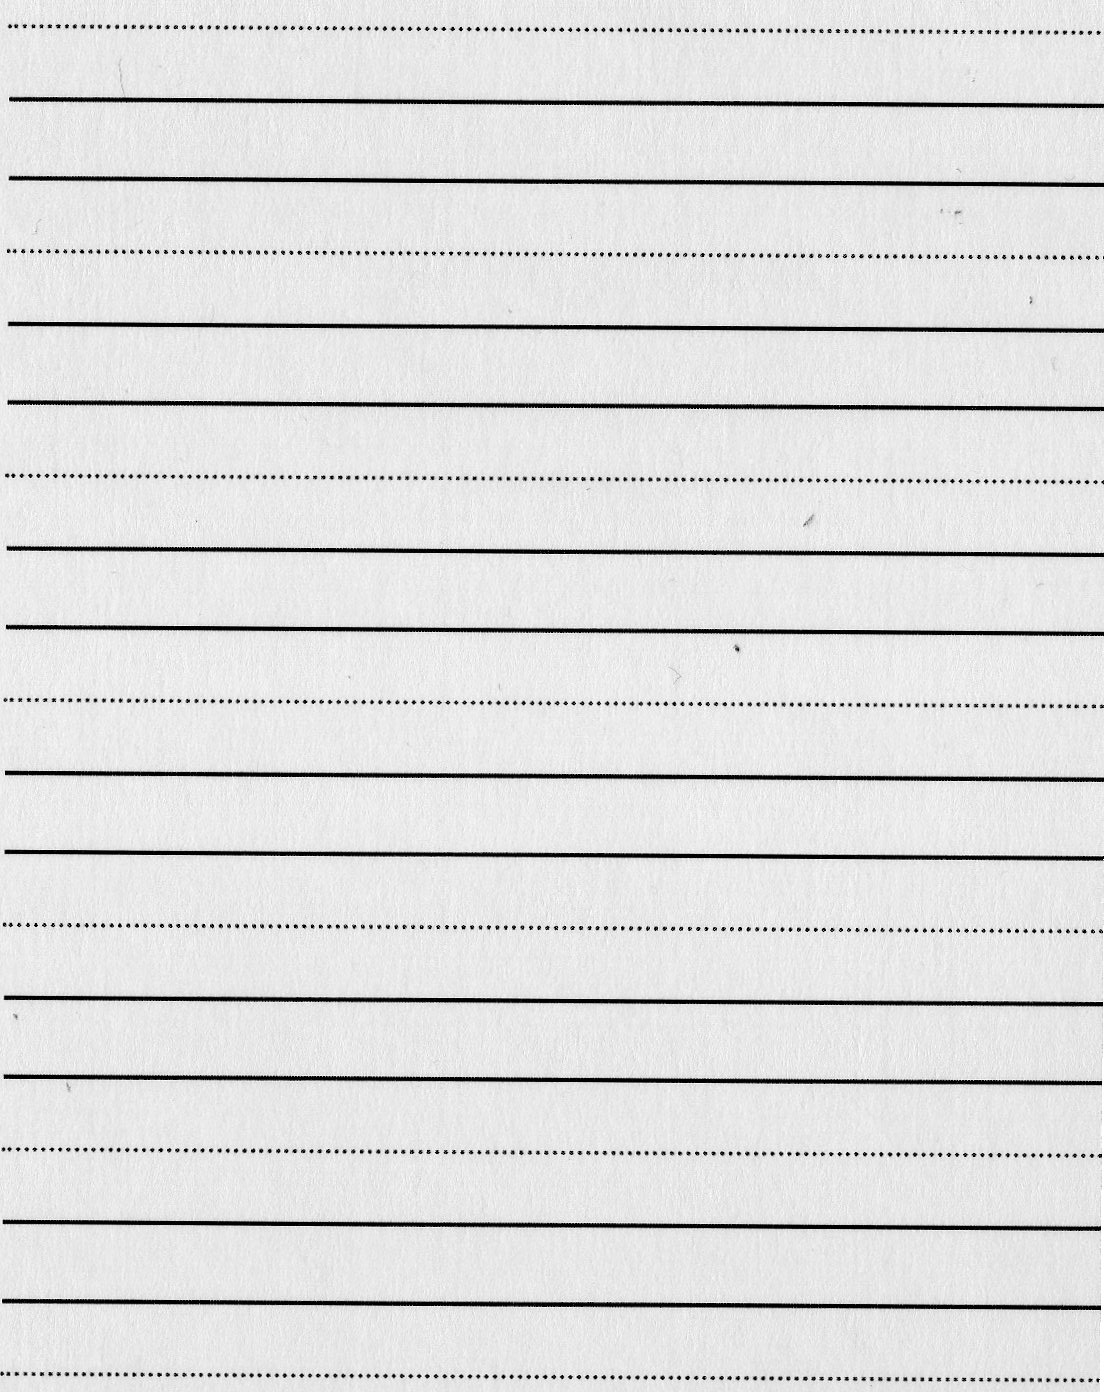 Dotted lined paper